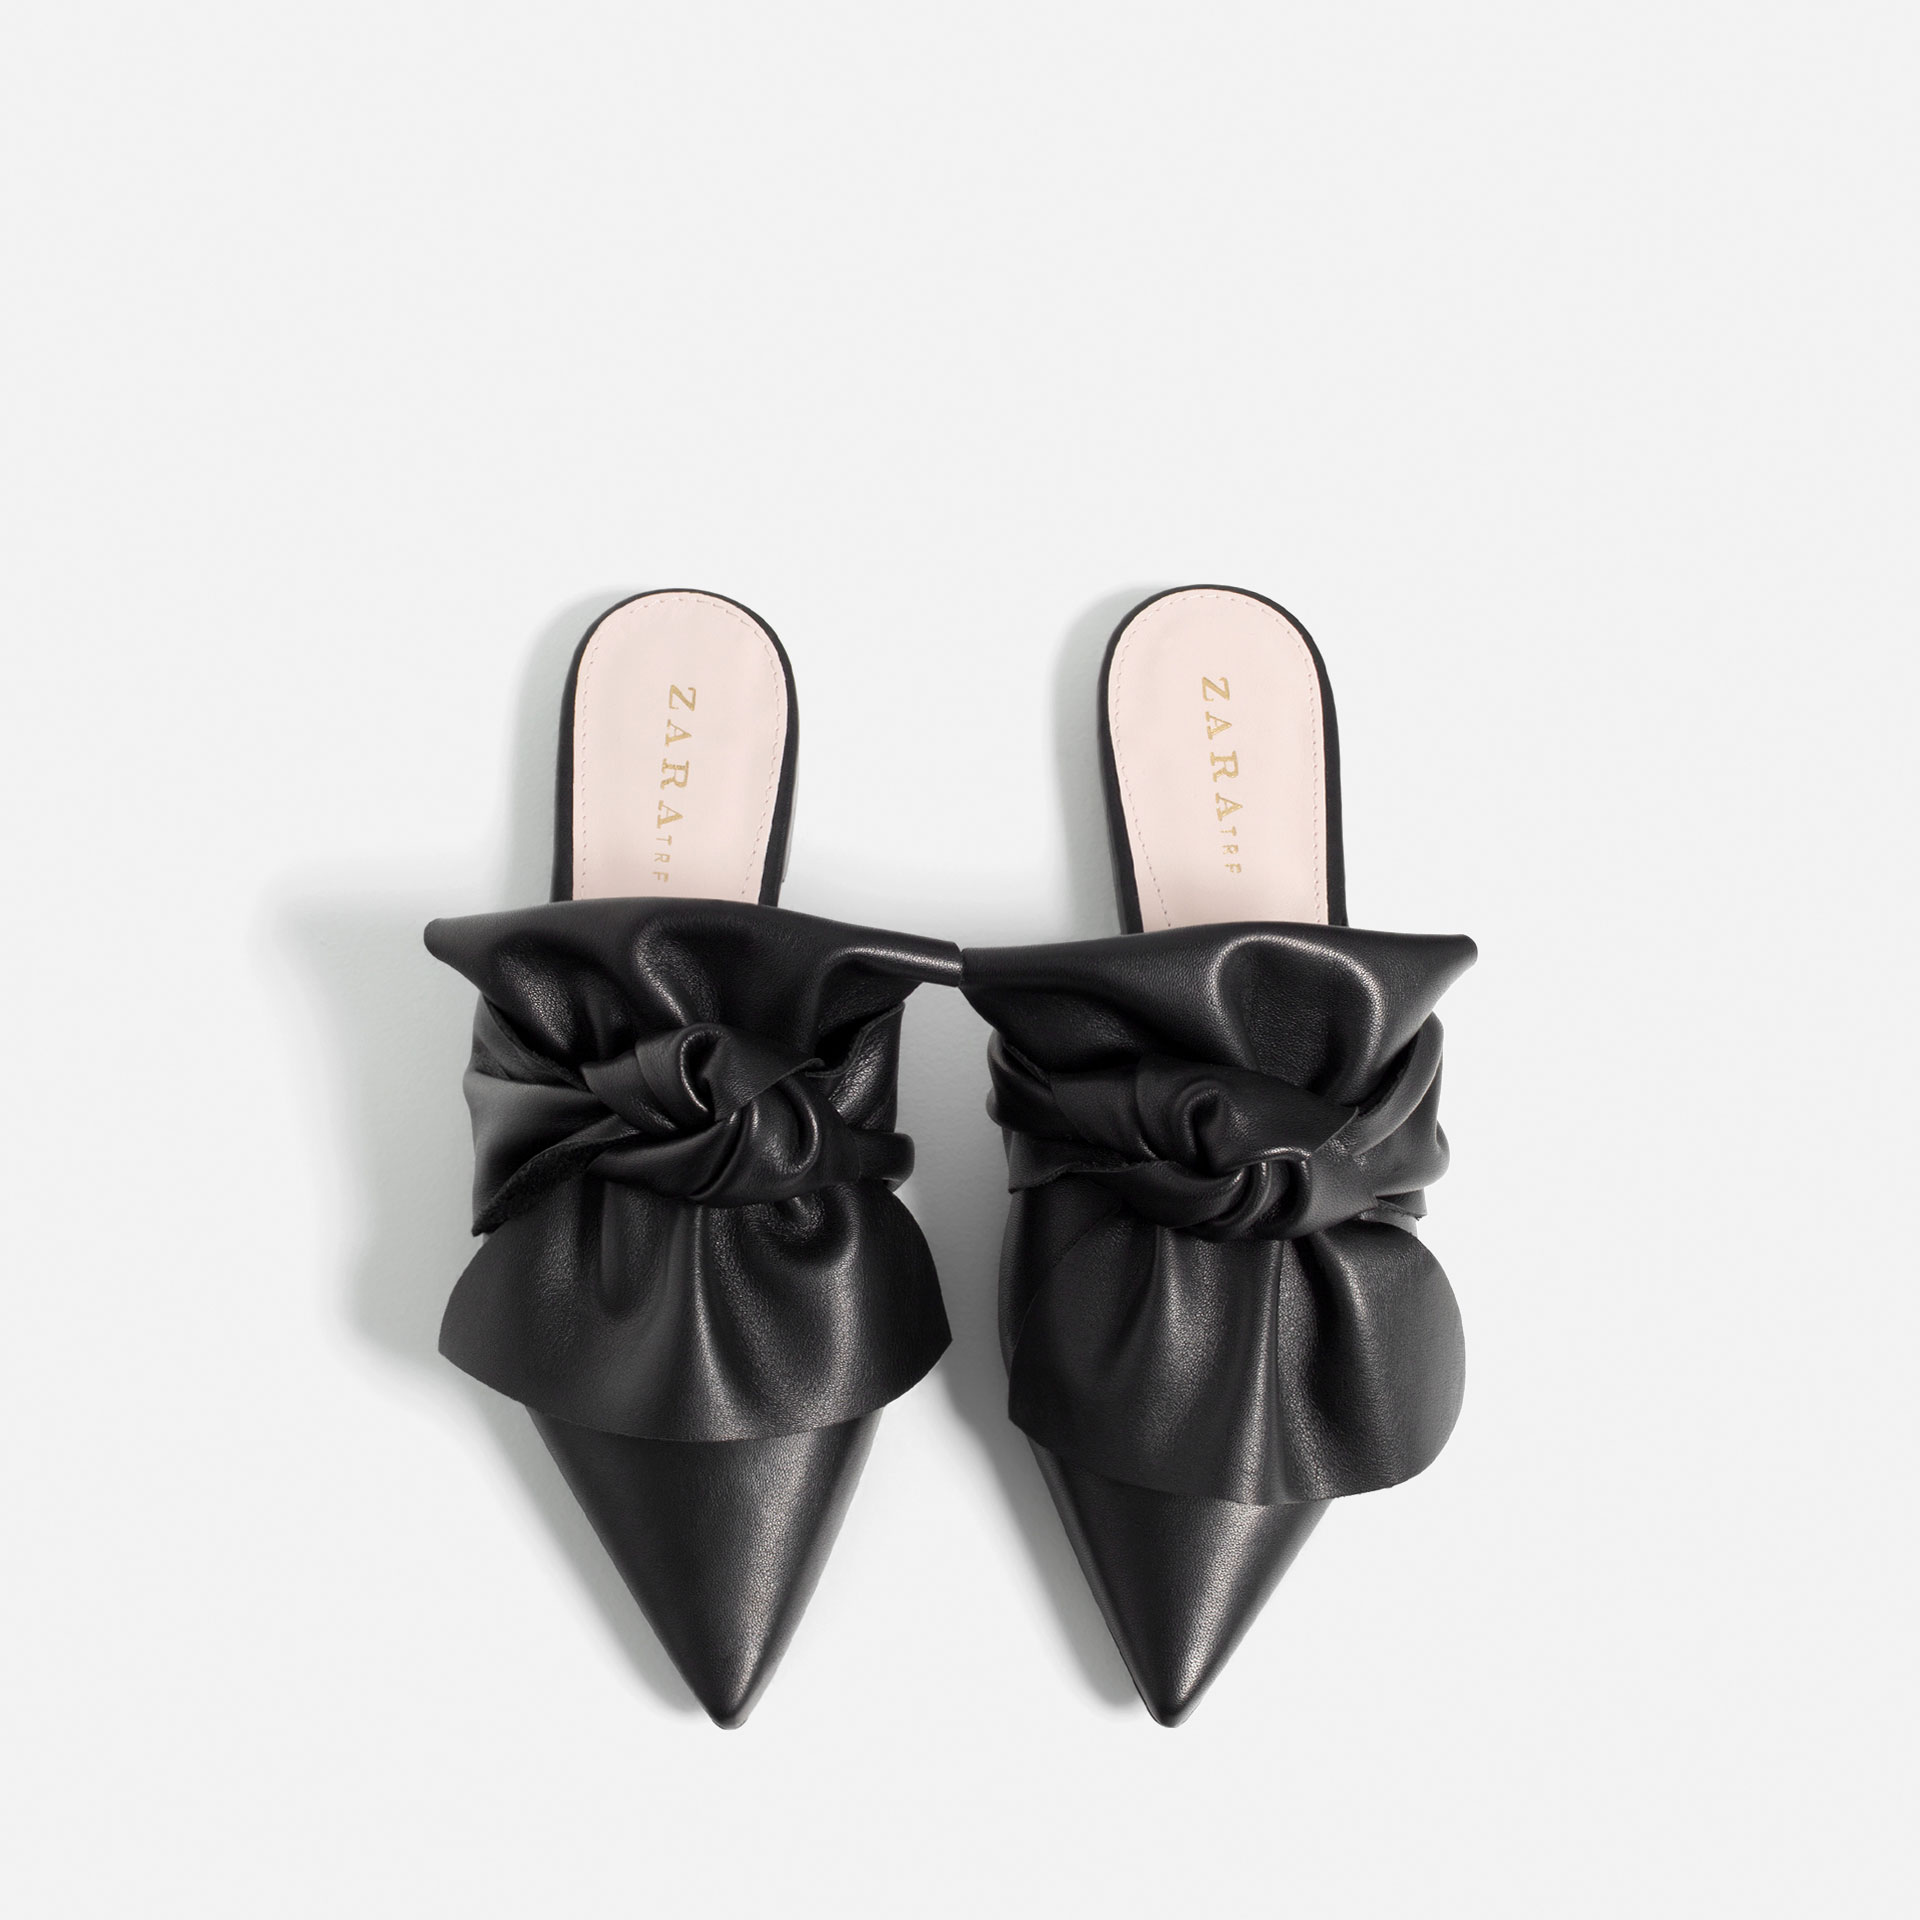 ROSE & IVY Journal Current Obsession Zara's Leather Bow Tie Slides